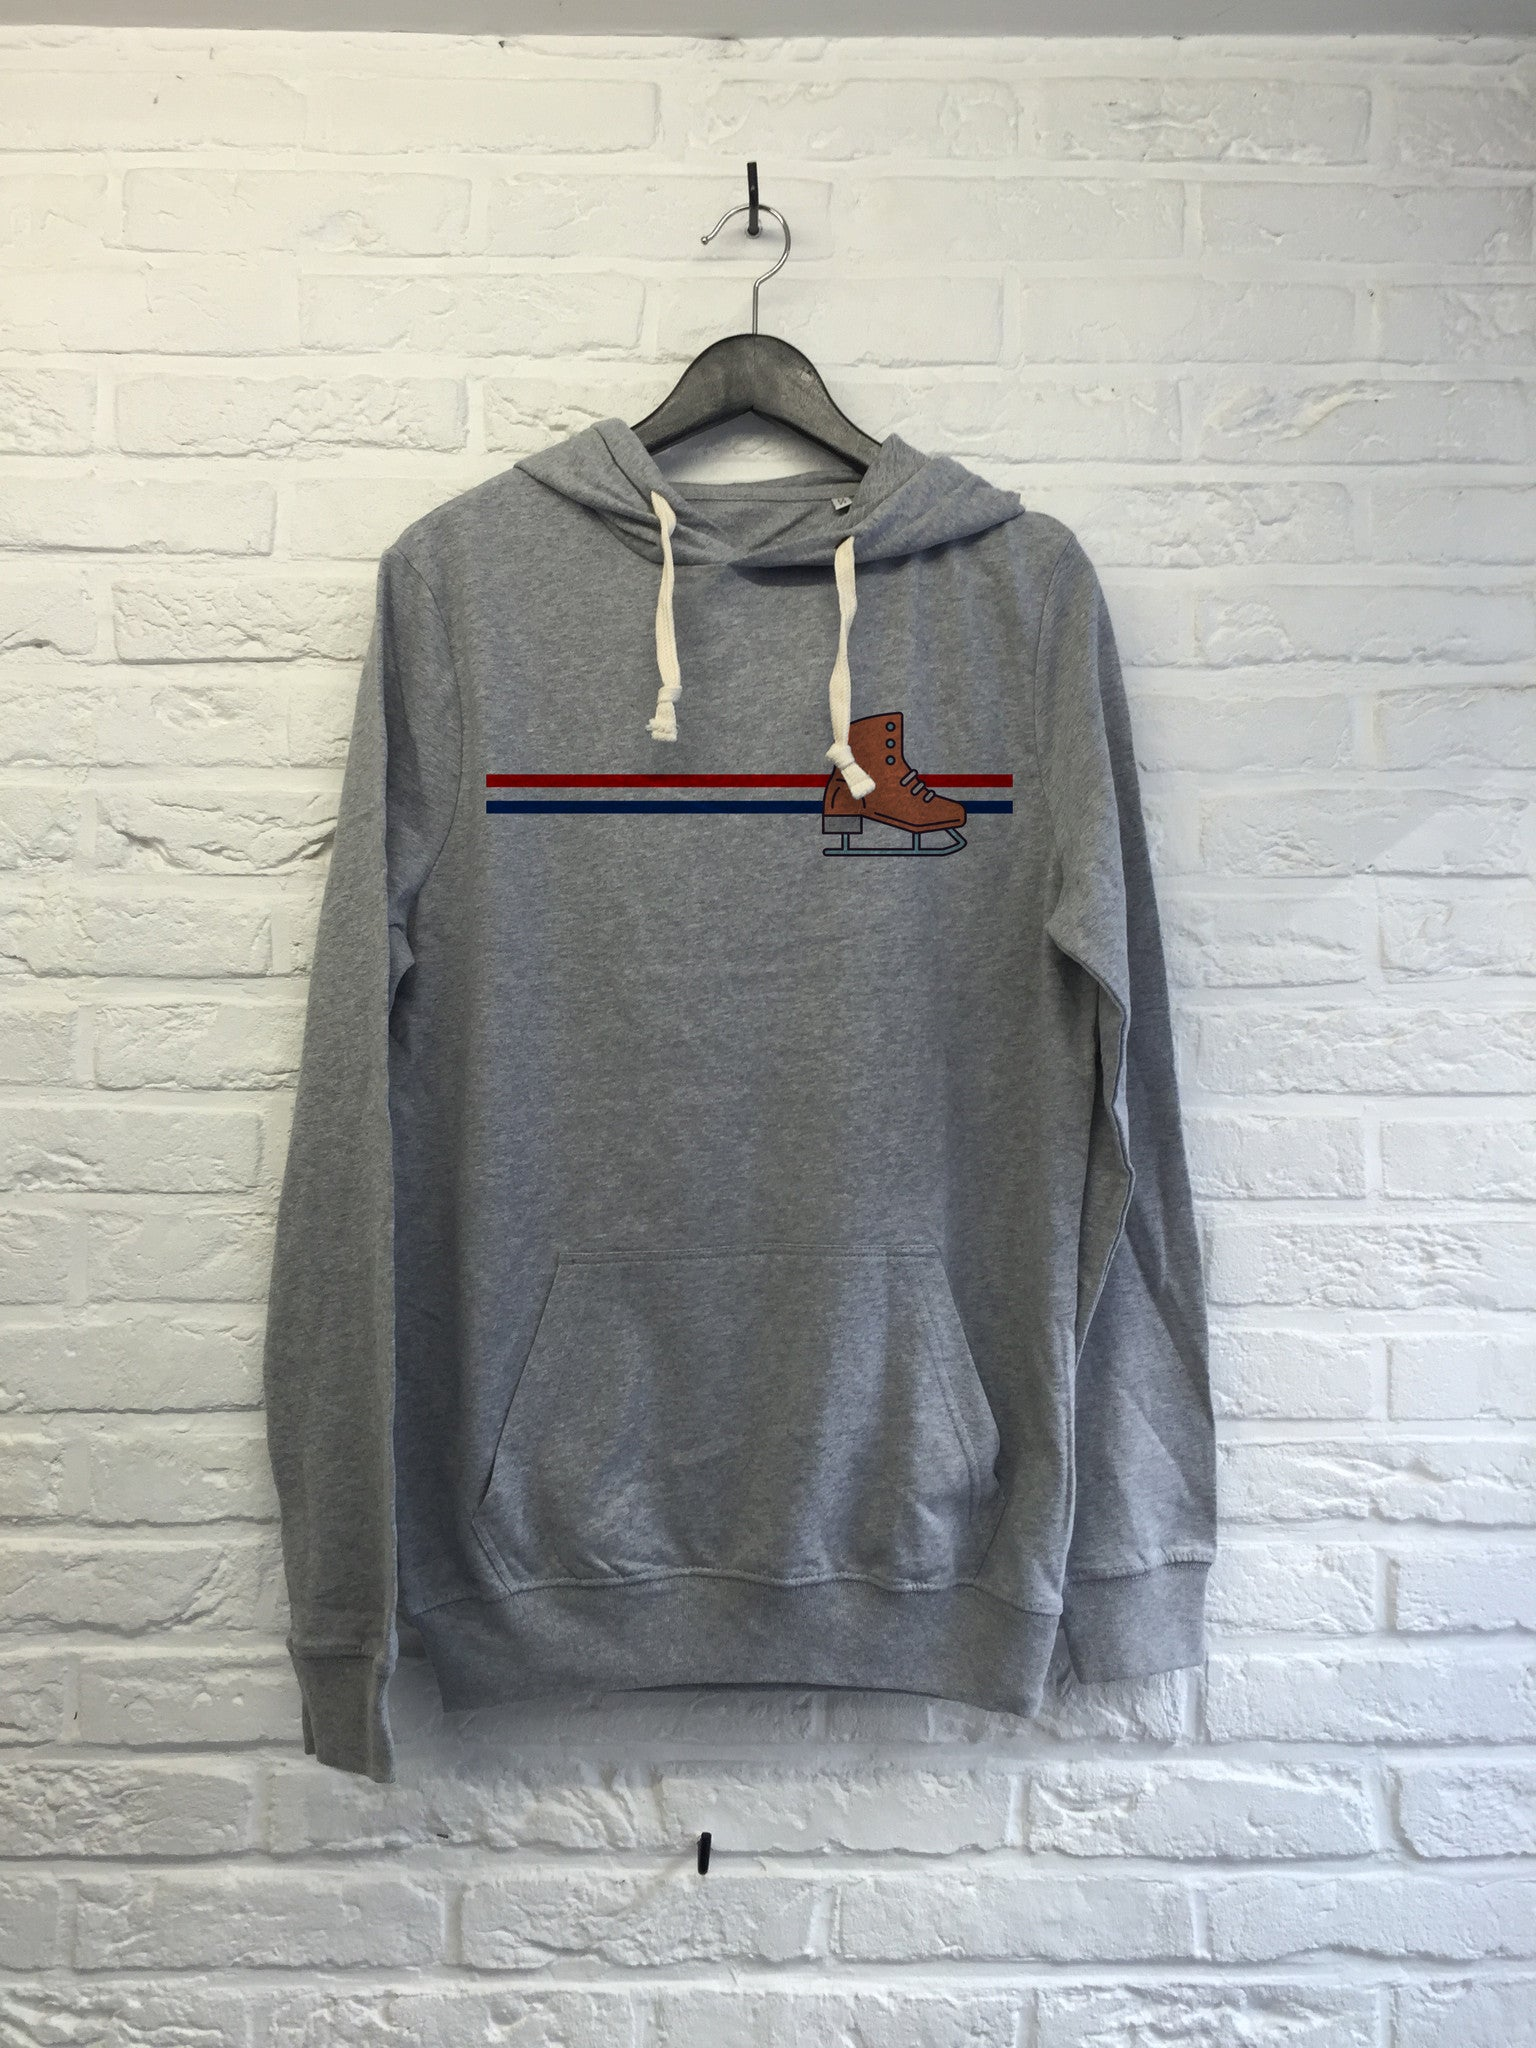 Patin à Glace - Hoodie super soft touch-Sweat shirts-Atelier Amelot